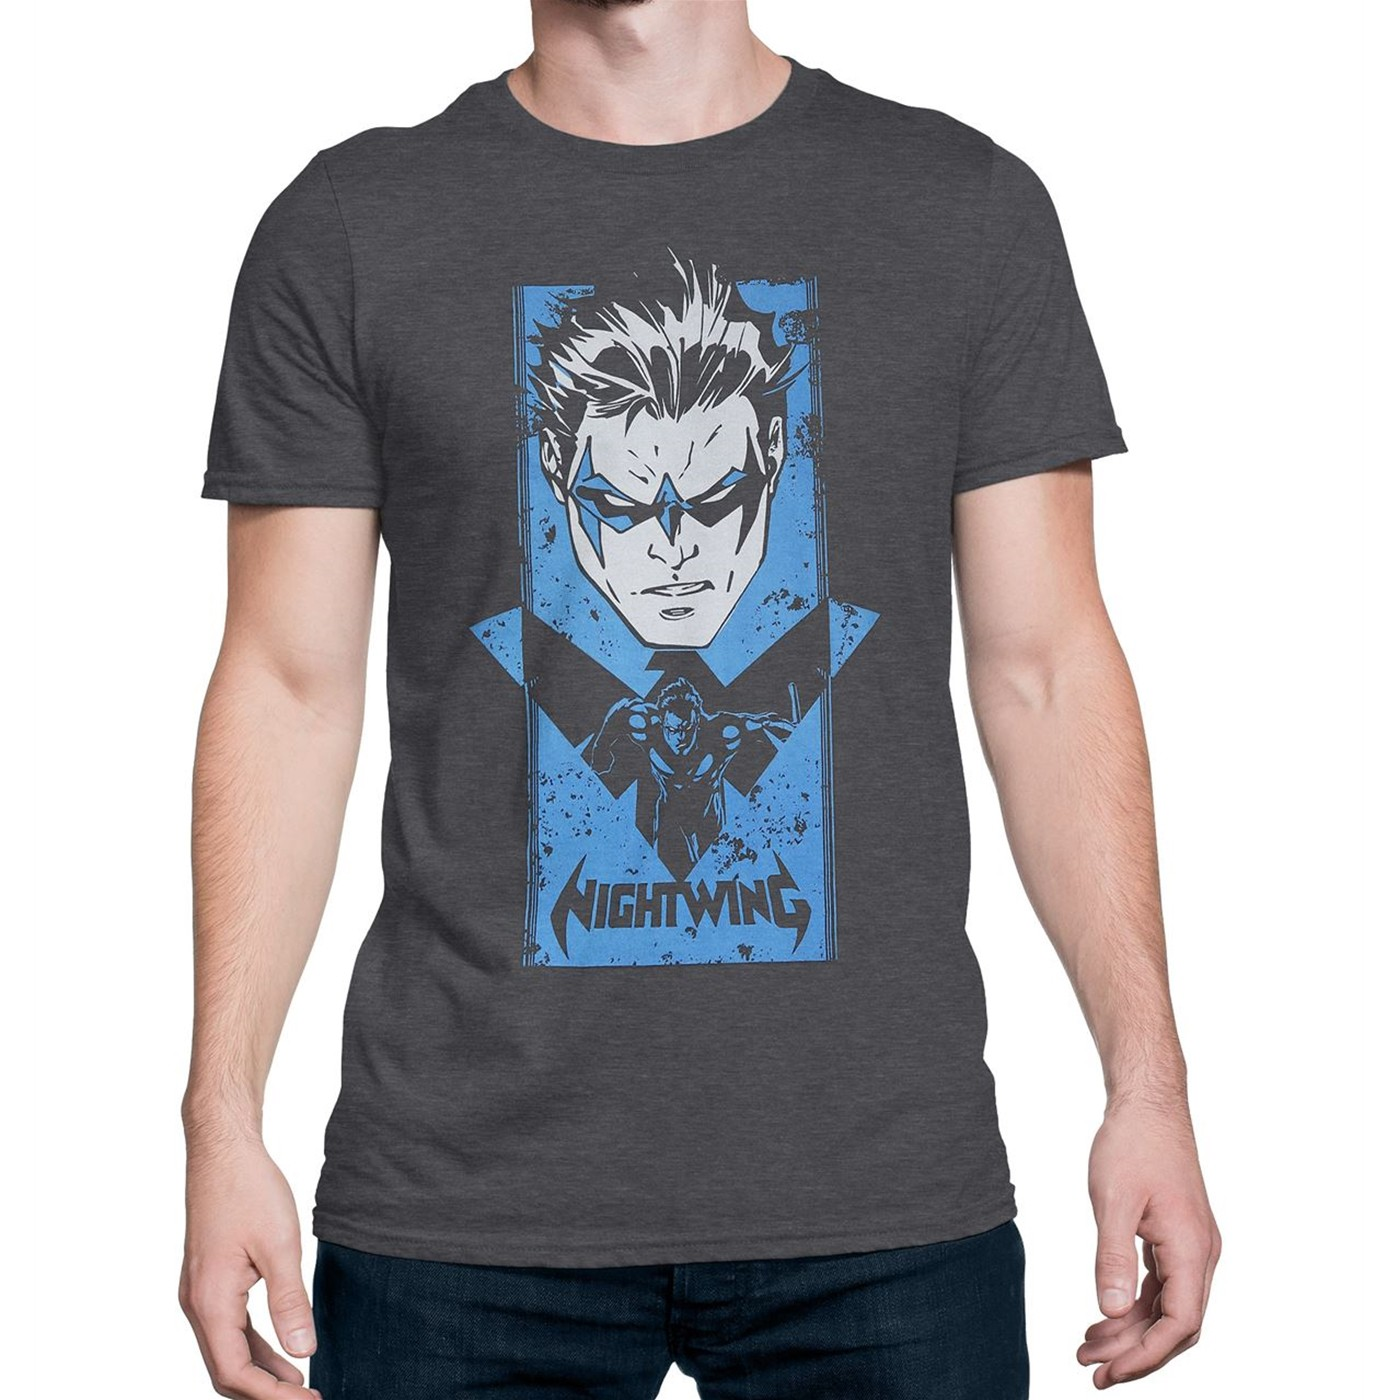 Nightwing Patroller of Bl├╝dhaven Men's T-Shirt